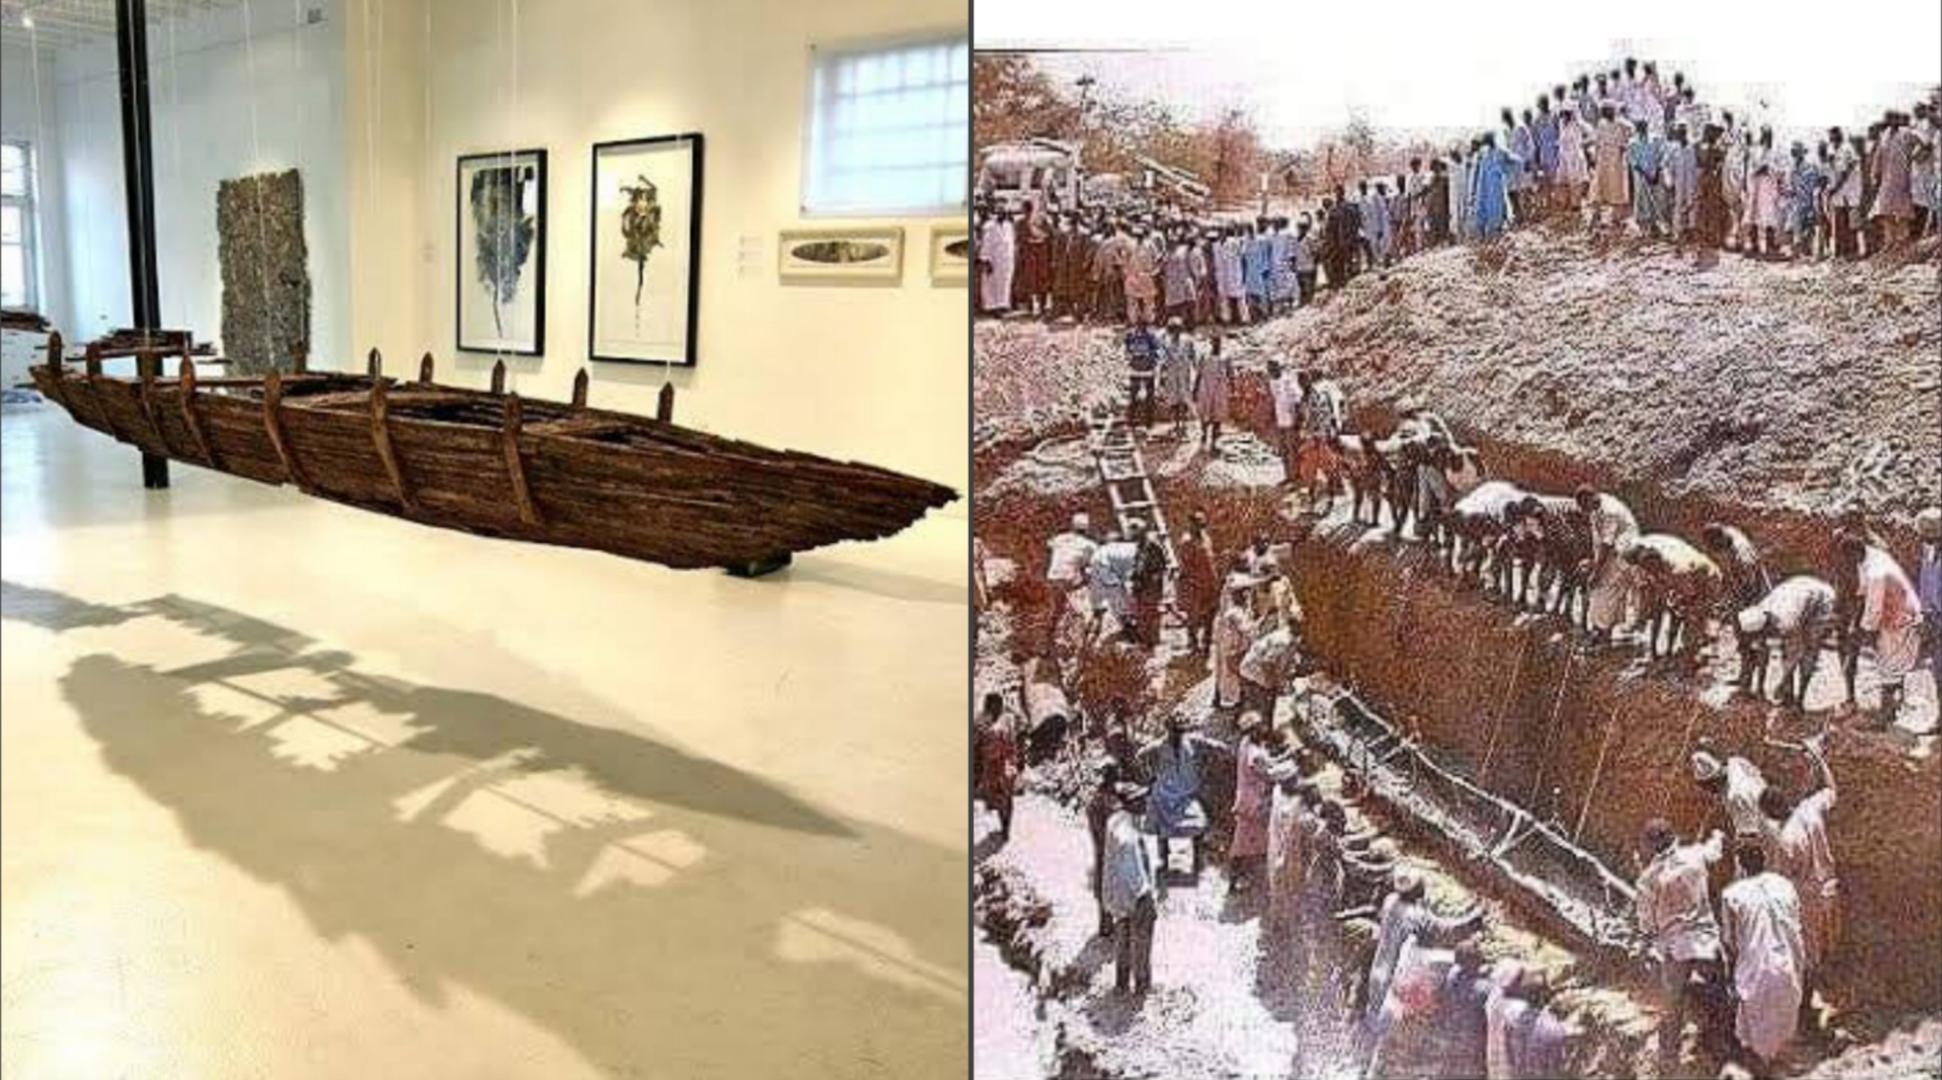 Dufuna Boat: The 8,000 years oldest Canoe in Africa & second oldest on earth